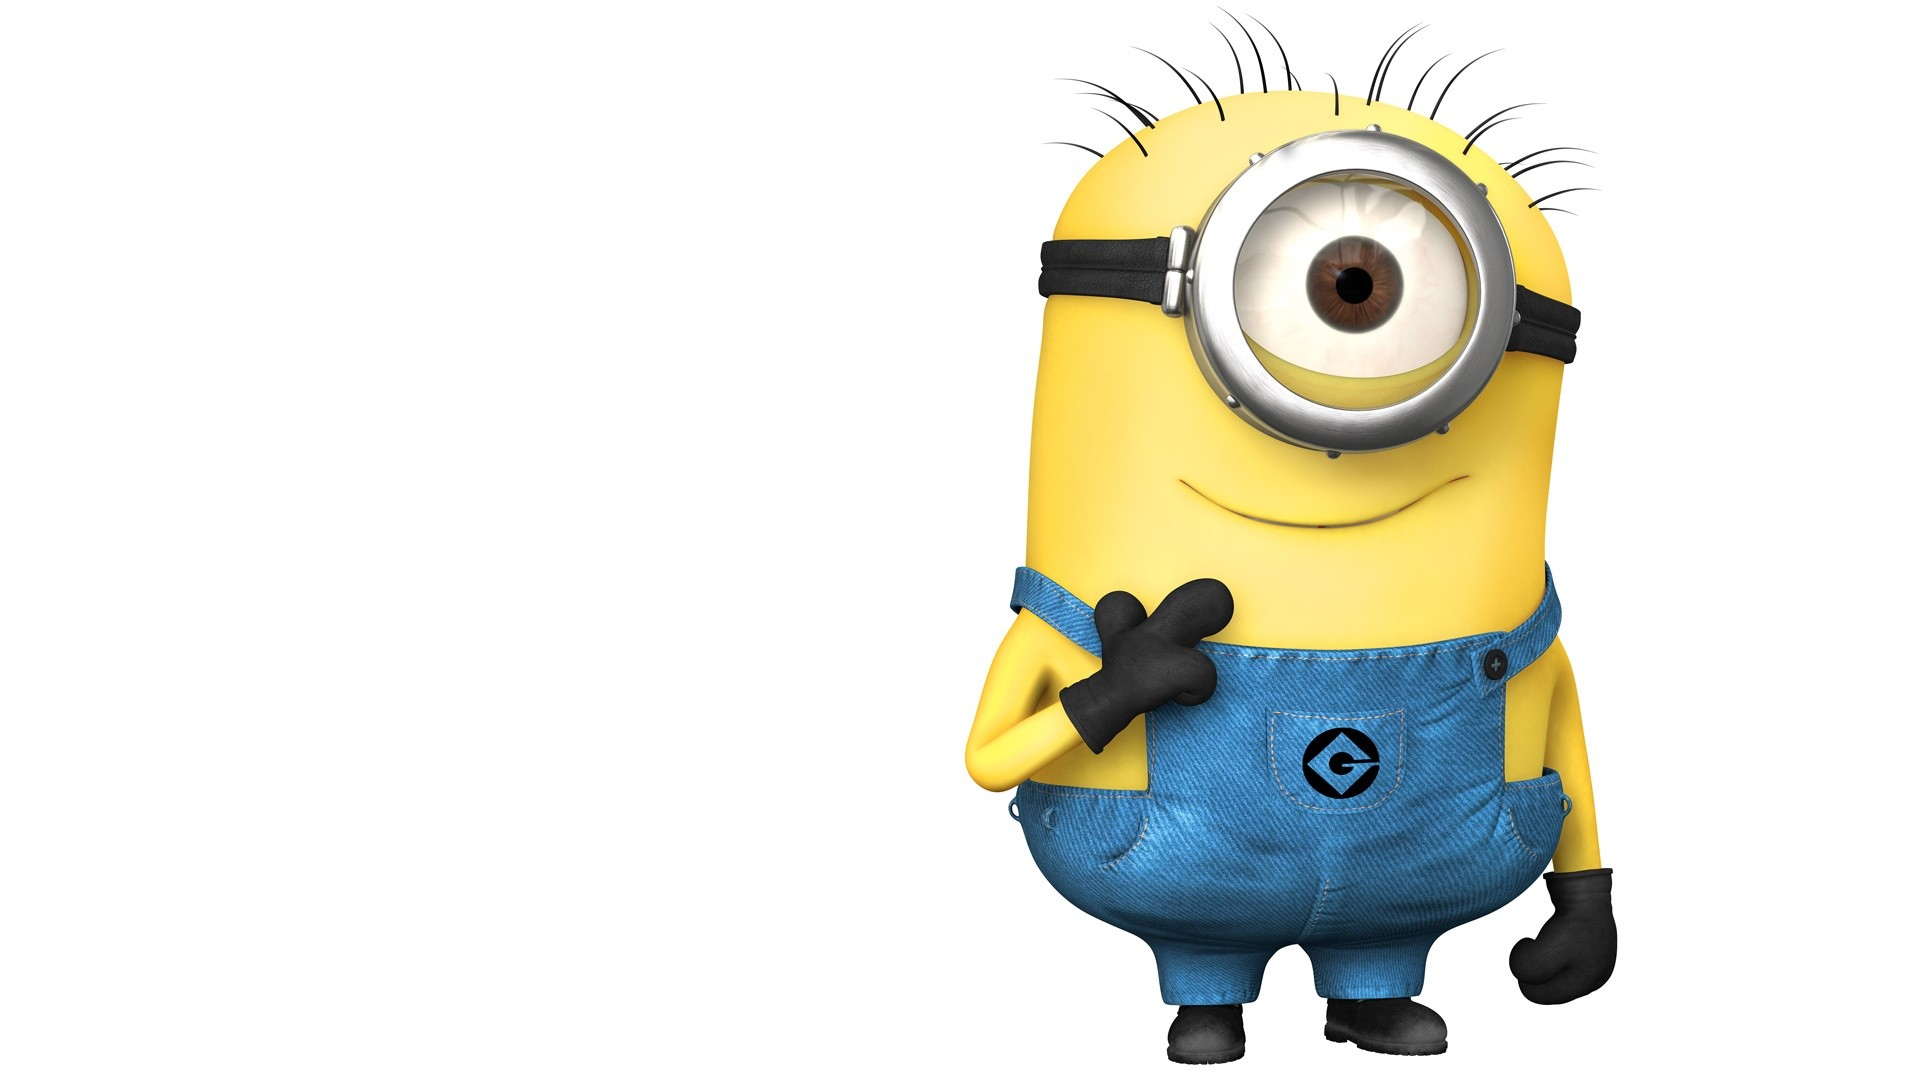 1920x1080 Minions widescreen wallpapers